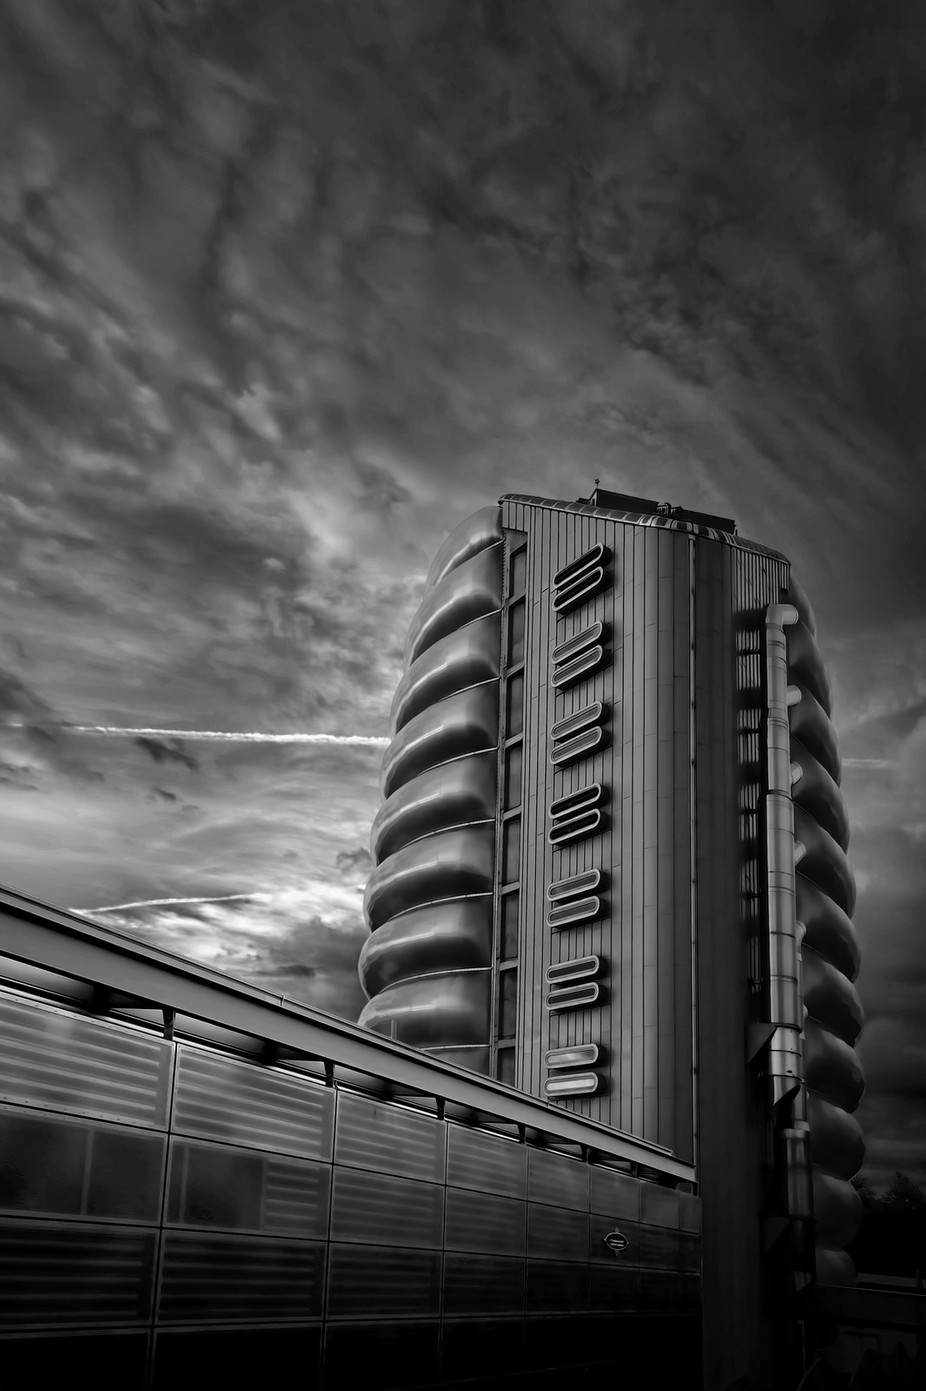 National Space Centre by RAPJones - Structures in Black and White Photo Contest